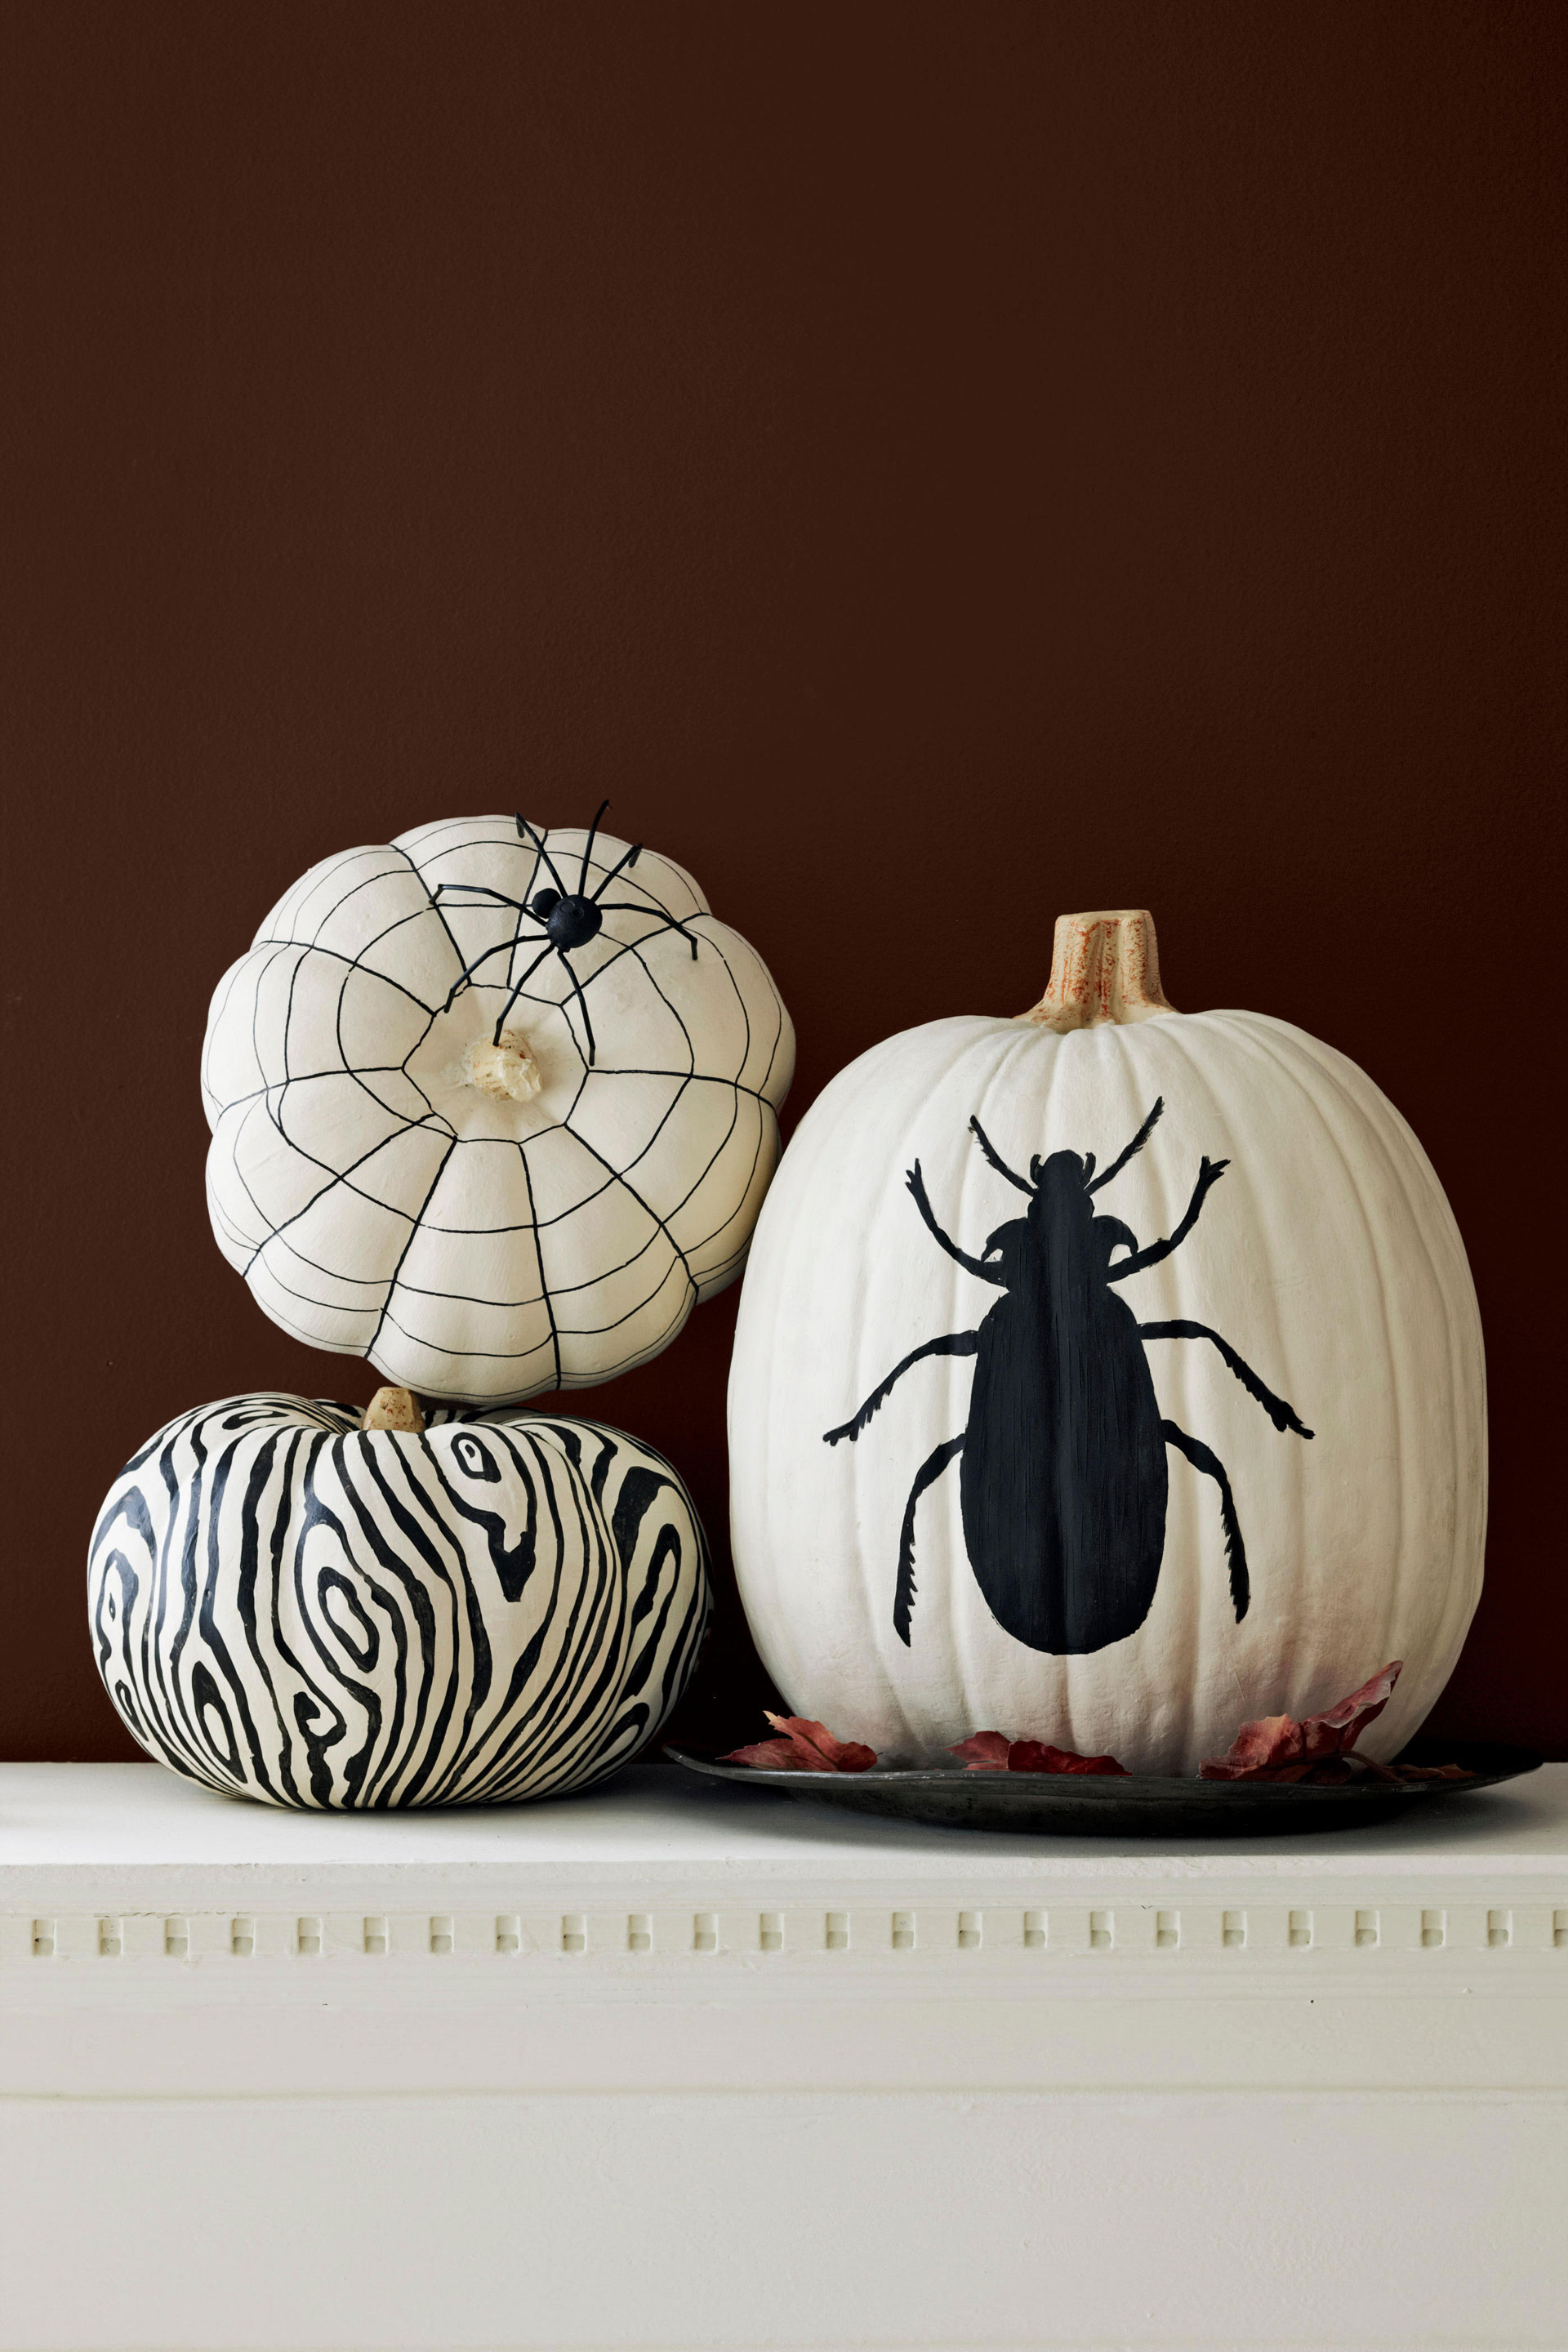 57 easy painted pumpkins ideas no carve halloween pumpkin painting decorating ideas